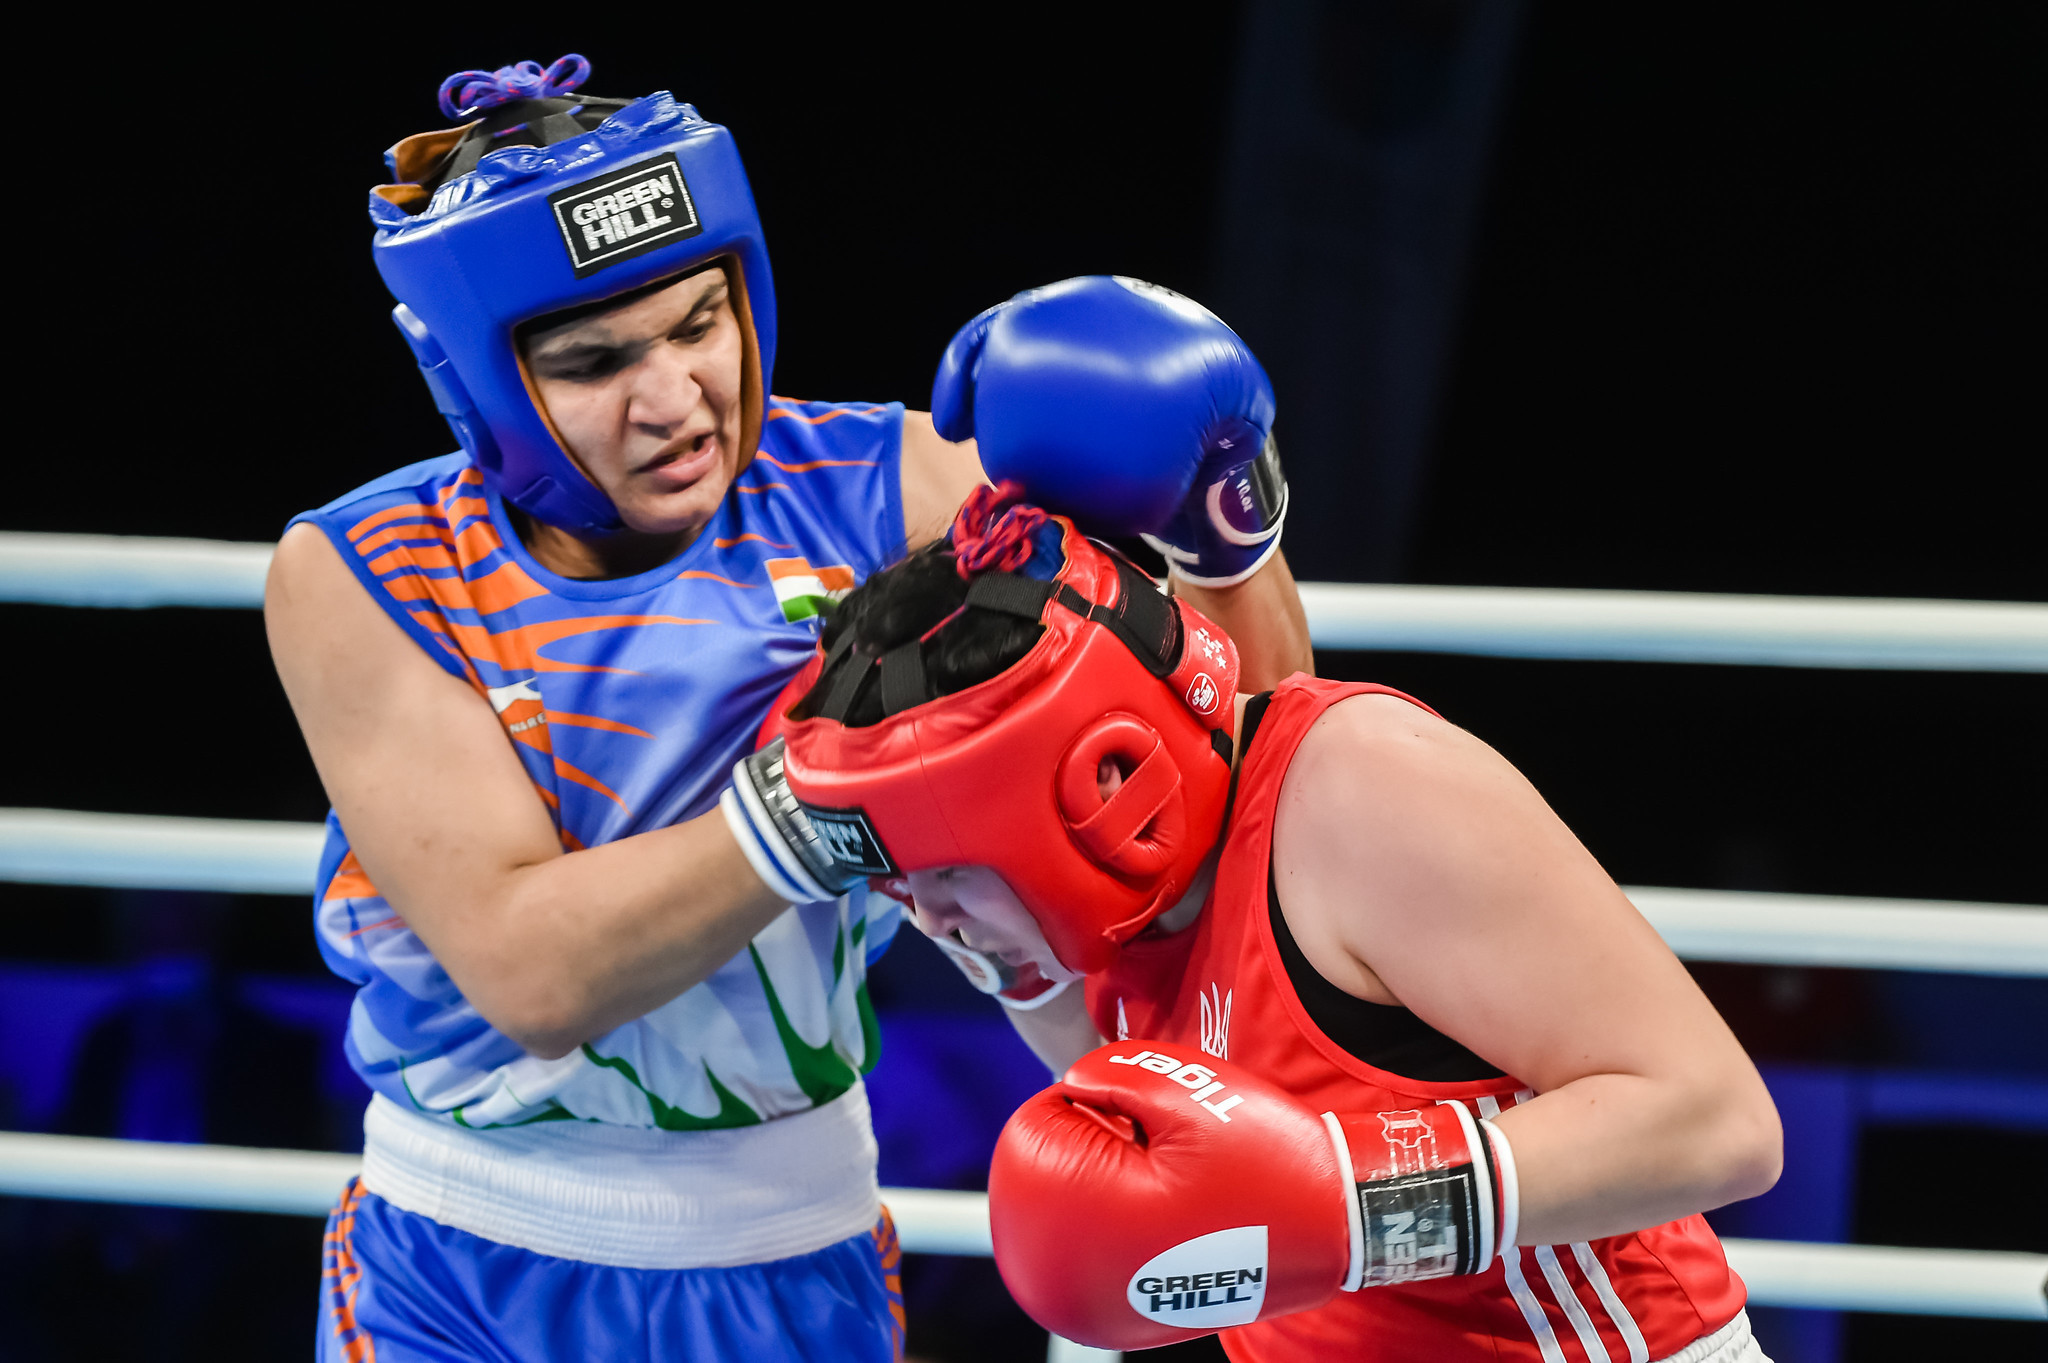 Indian boxers power into the medal zone at AIBA Youth World Championships